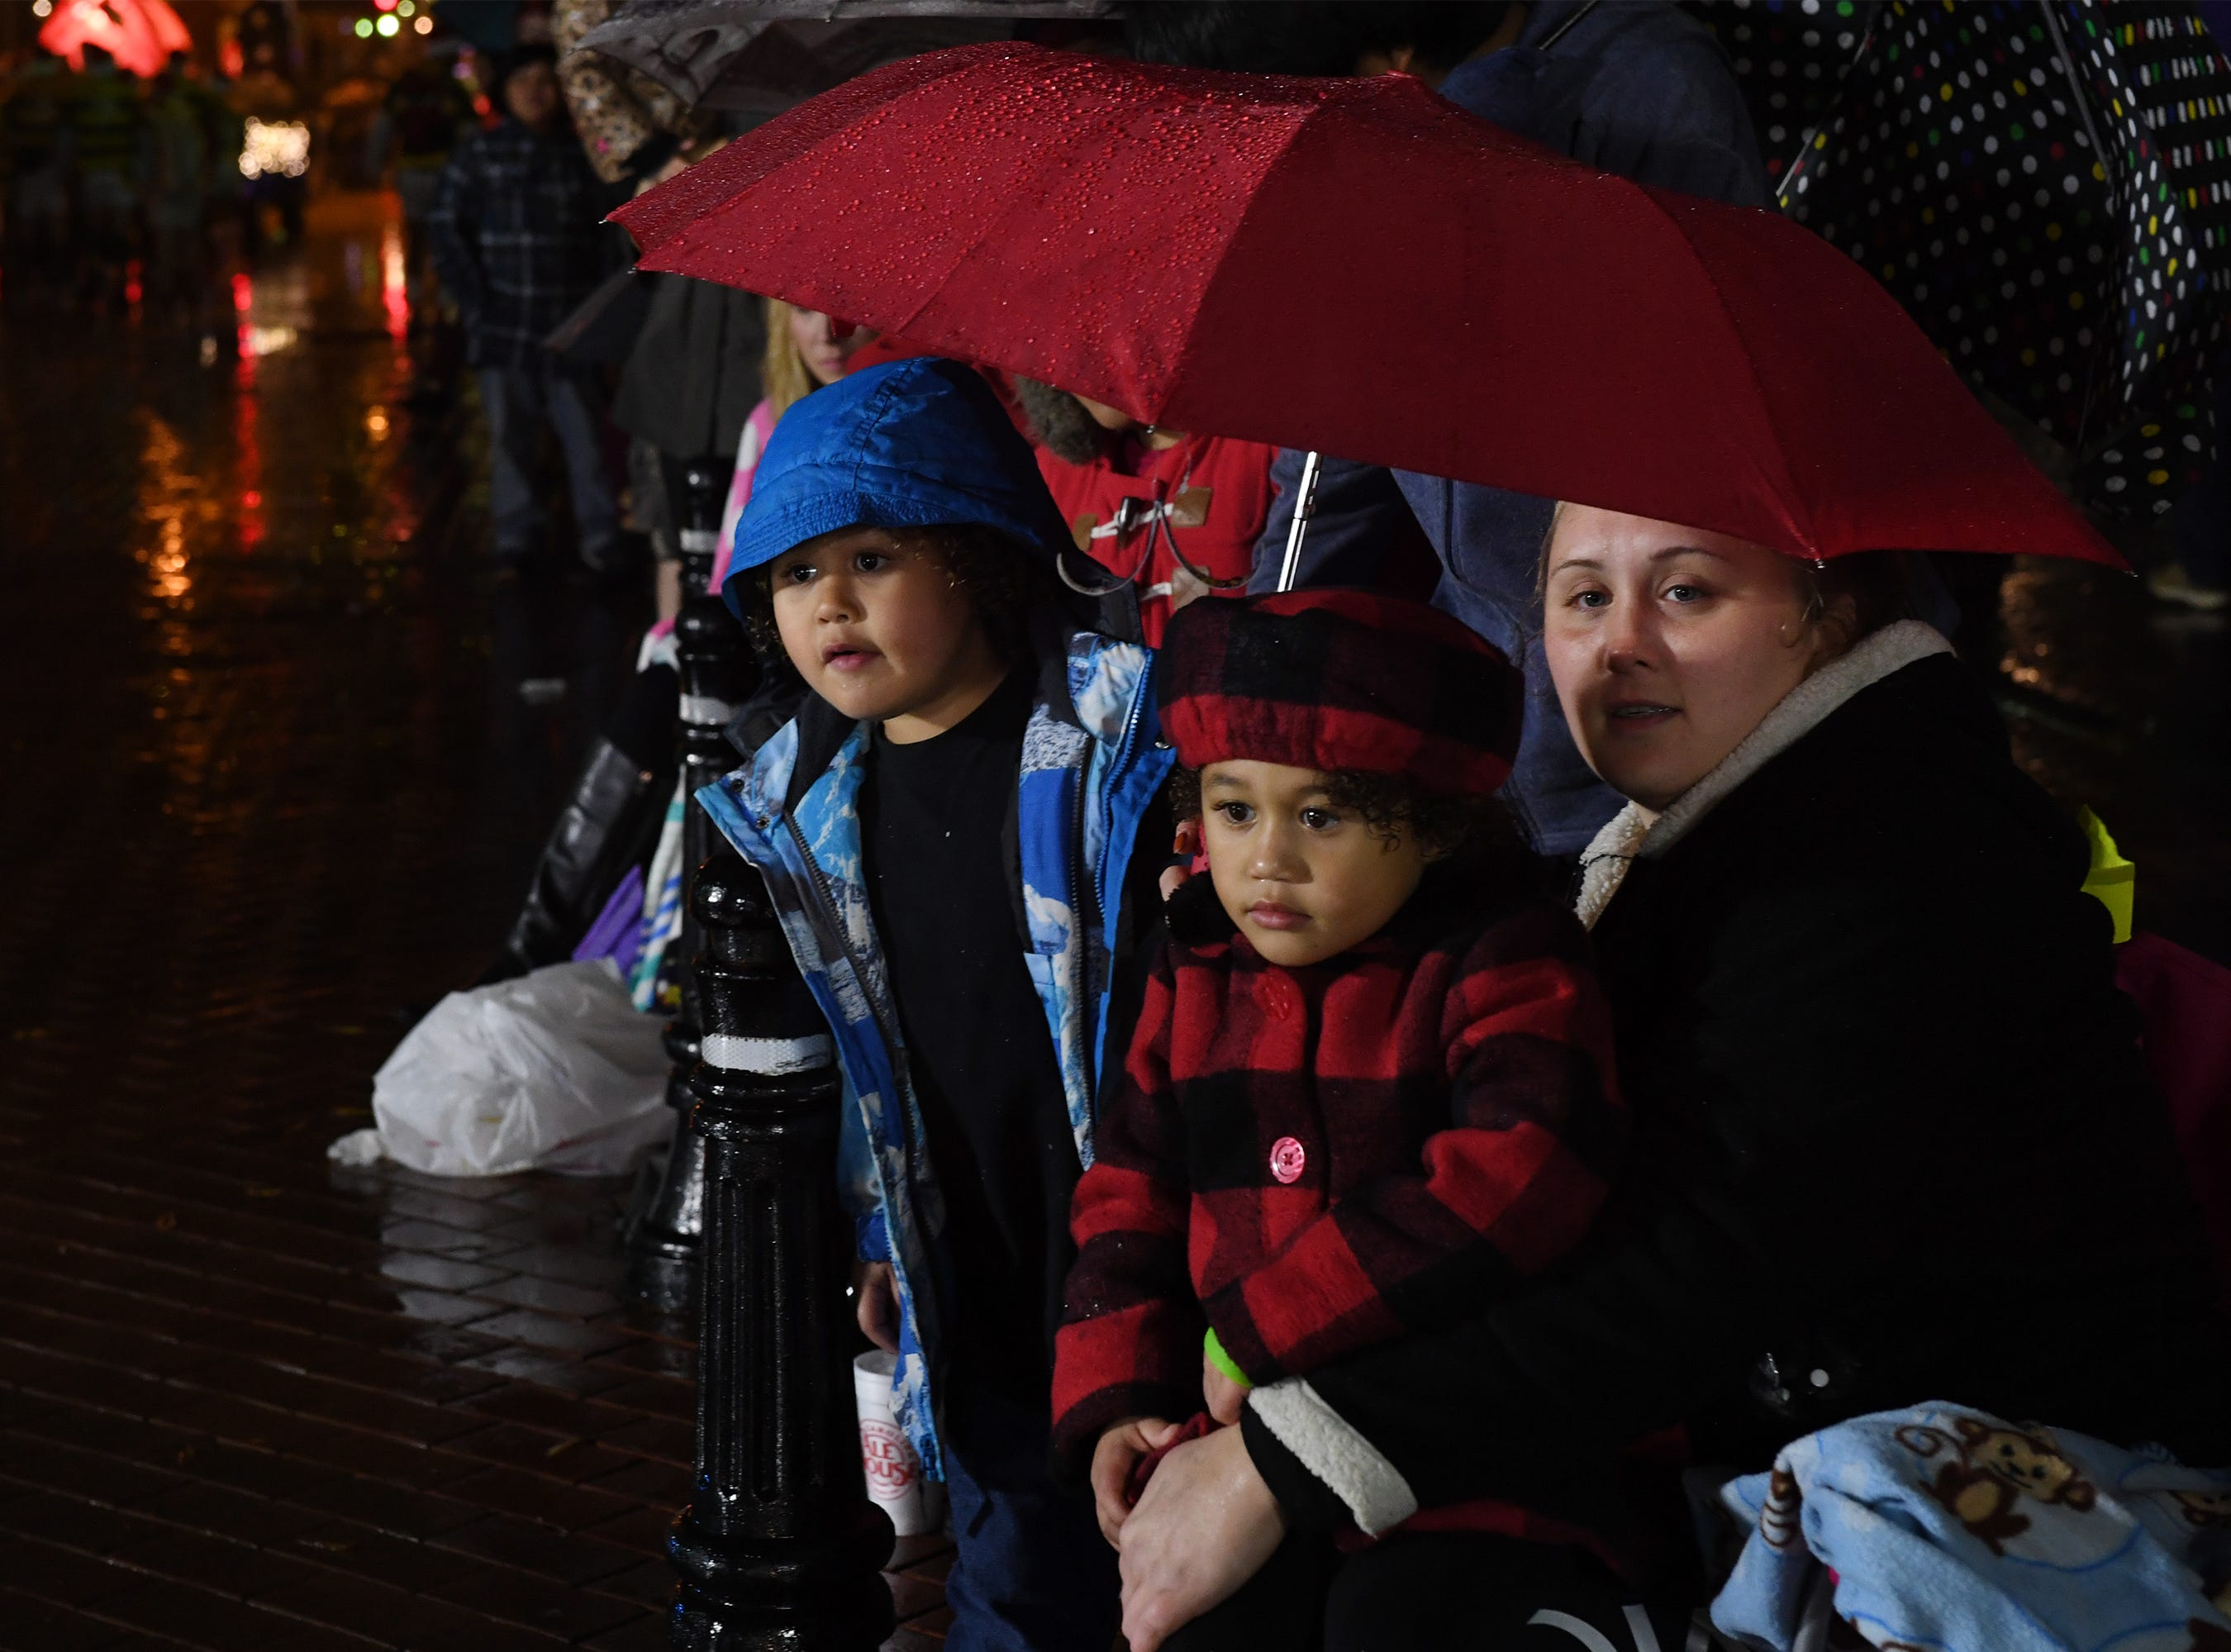 Jennifer Thibeau and her kids Khloe Thibeau, 3, and Treven Lisvey, 4,watch the Greenville Poinsettia Christmas Parade Saturday, Dec. 1, 2018 in downtown Greenville.